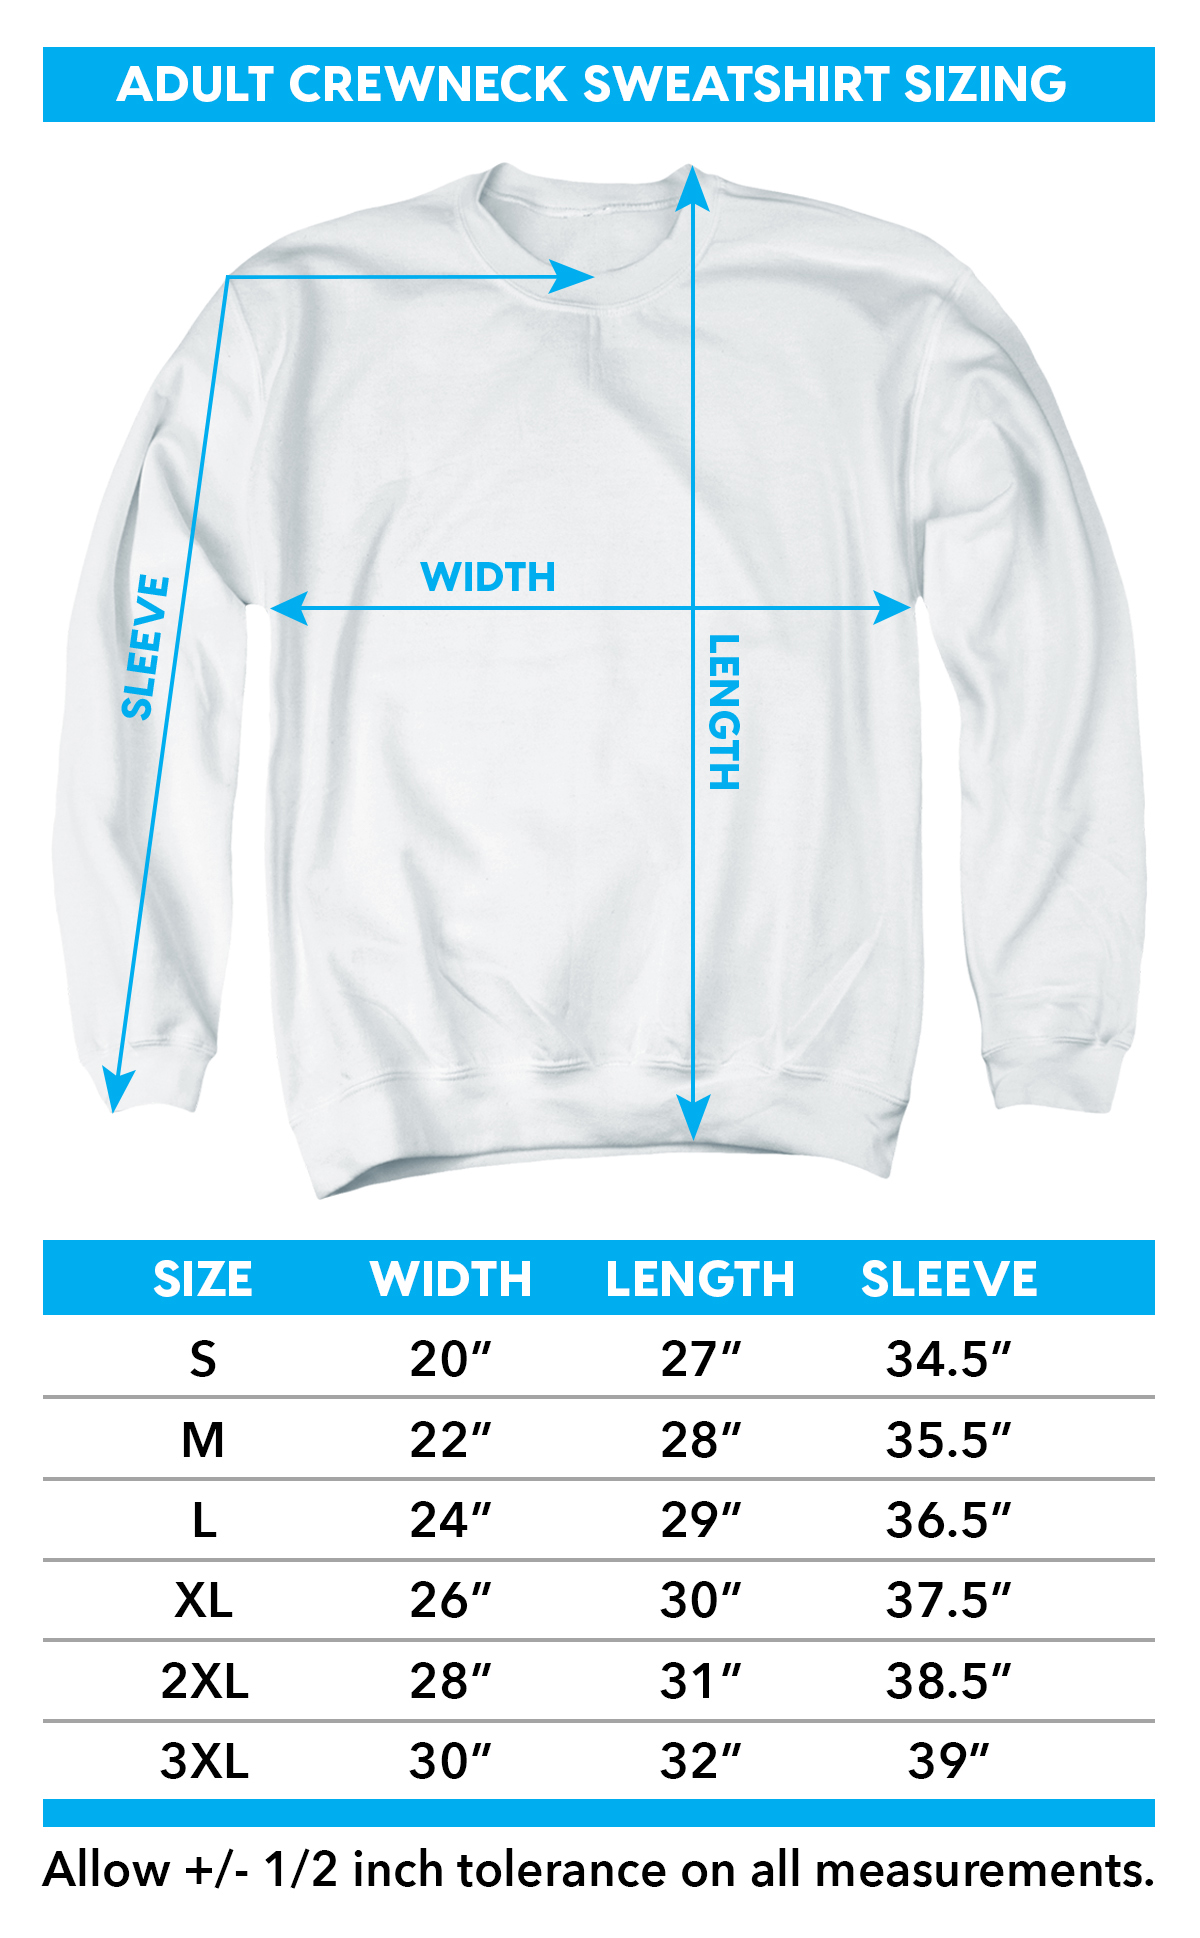 Sizing chart for the Batman Saints and Psychos crewneck sweatshirt